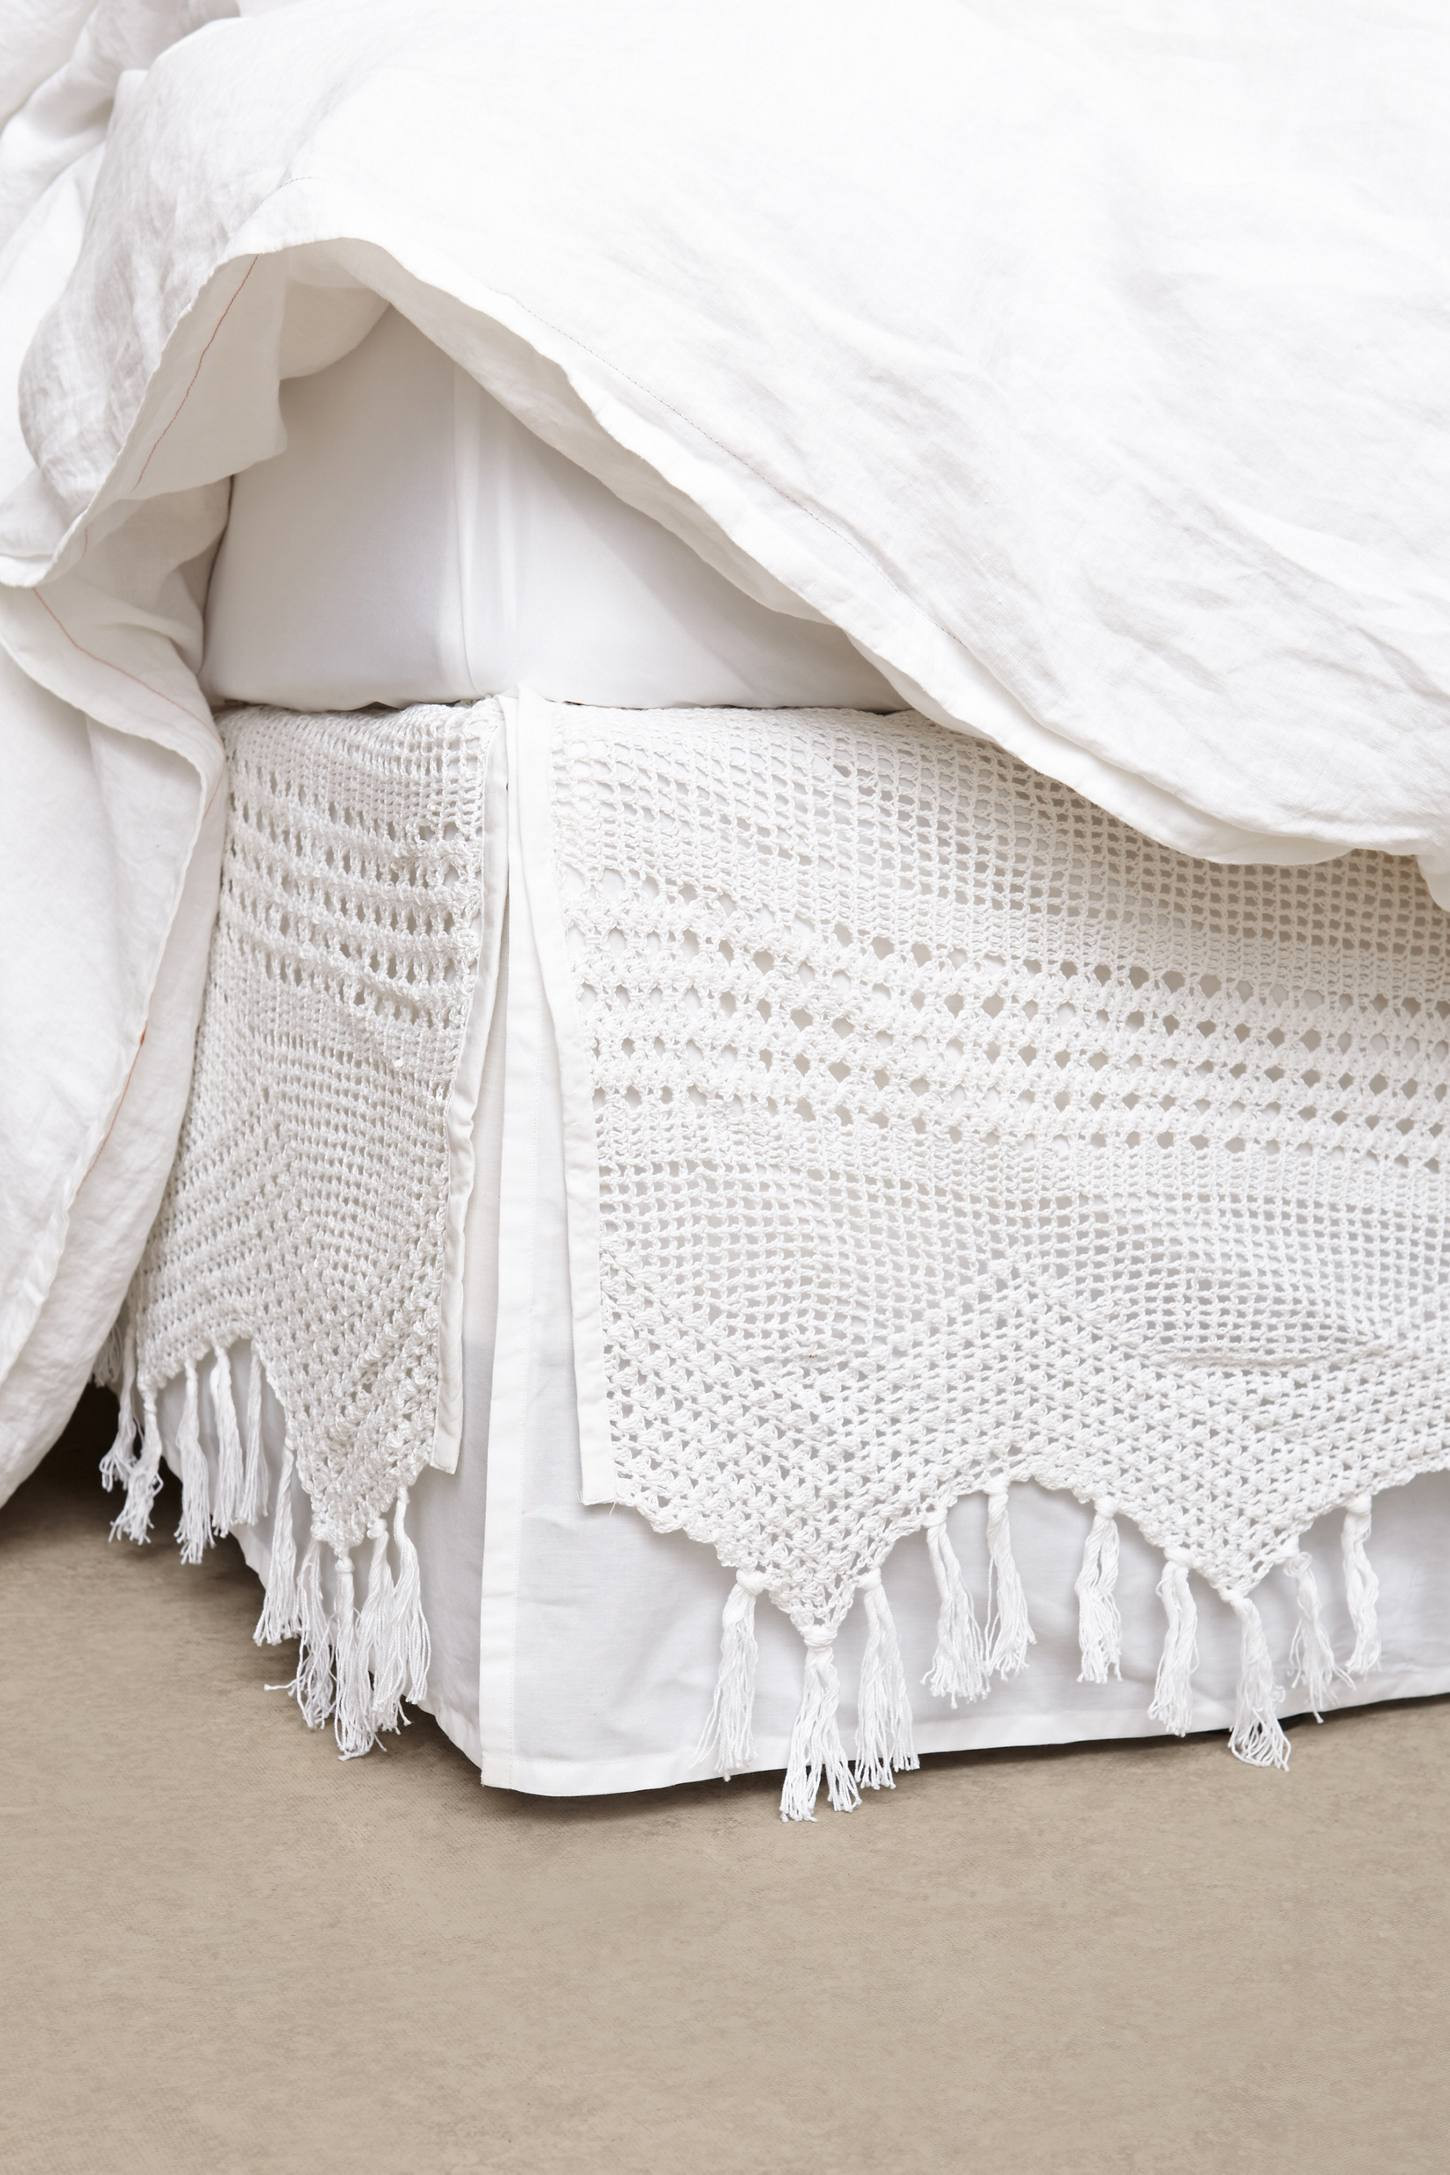 Luxury Fringe Crochet Bedskirt Crochet Bed Skirts Of Gorgeous 41 Pics Crochet Bed Skirts